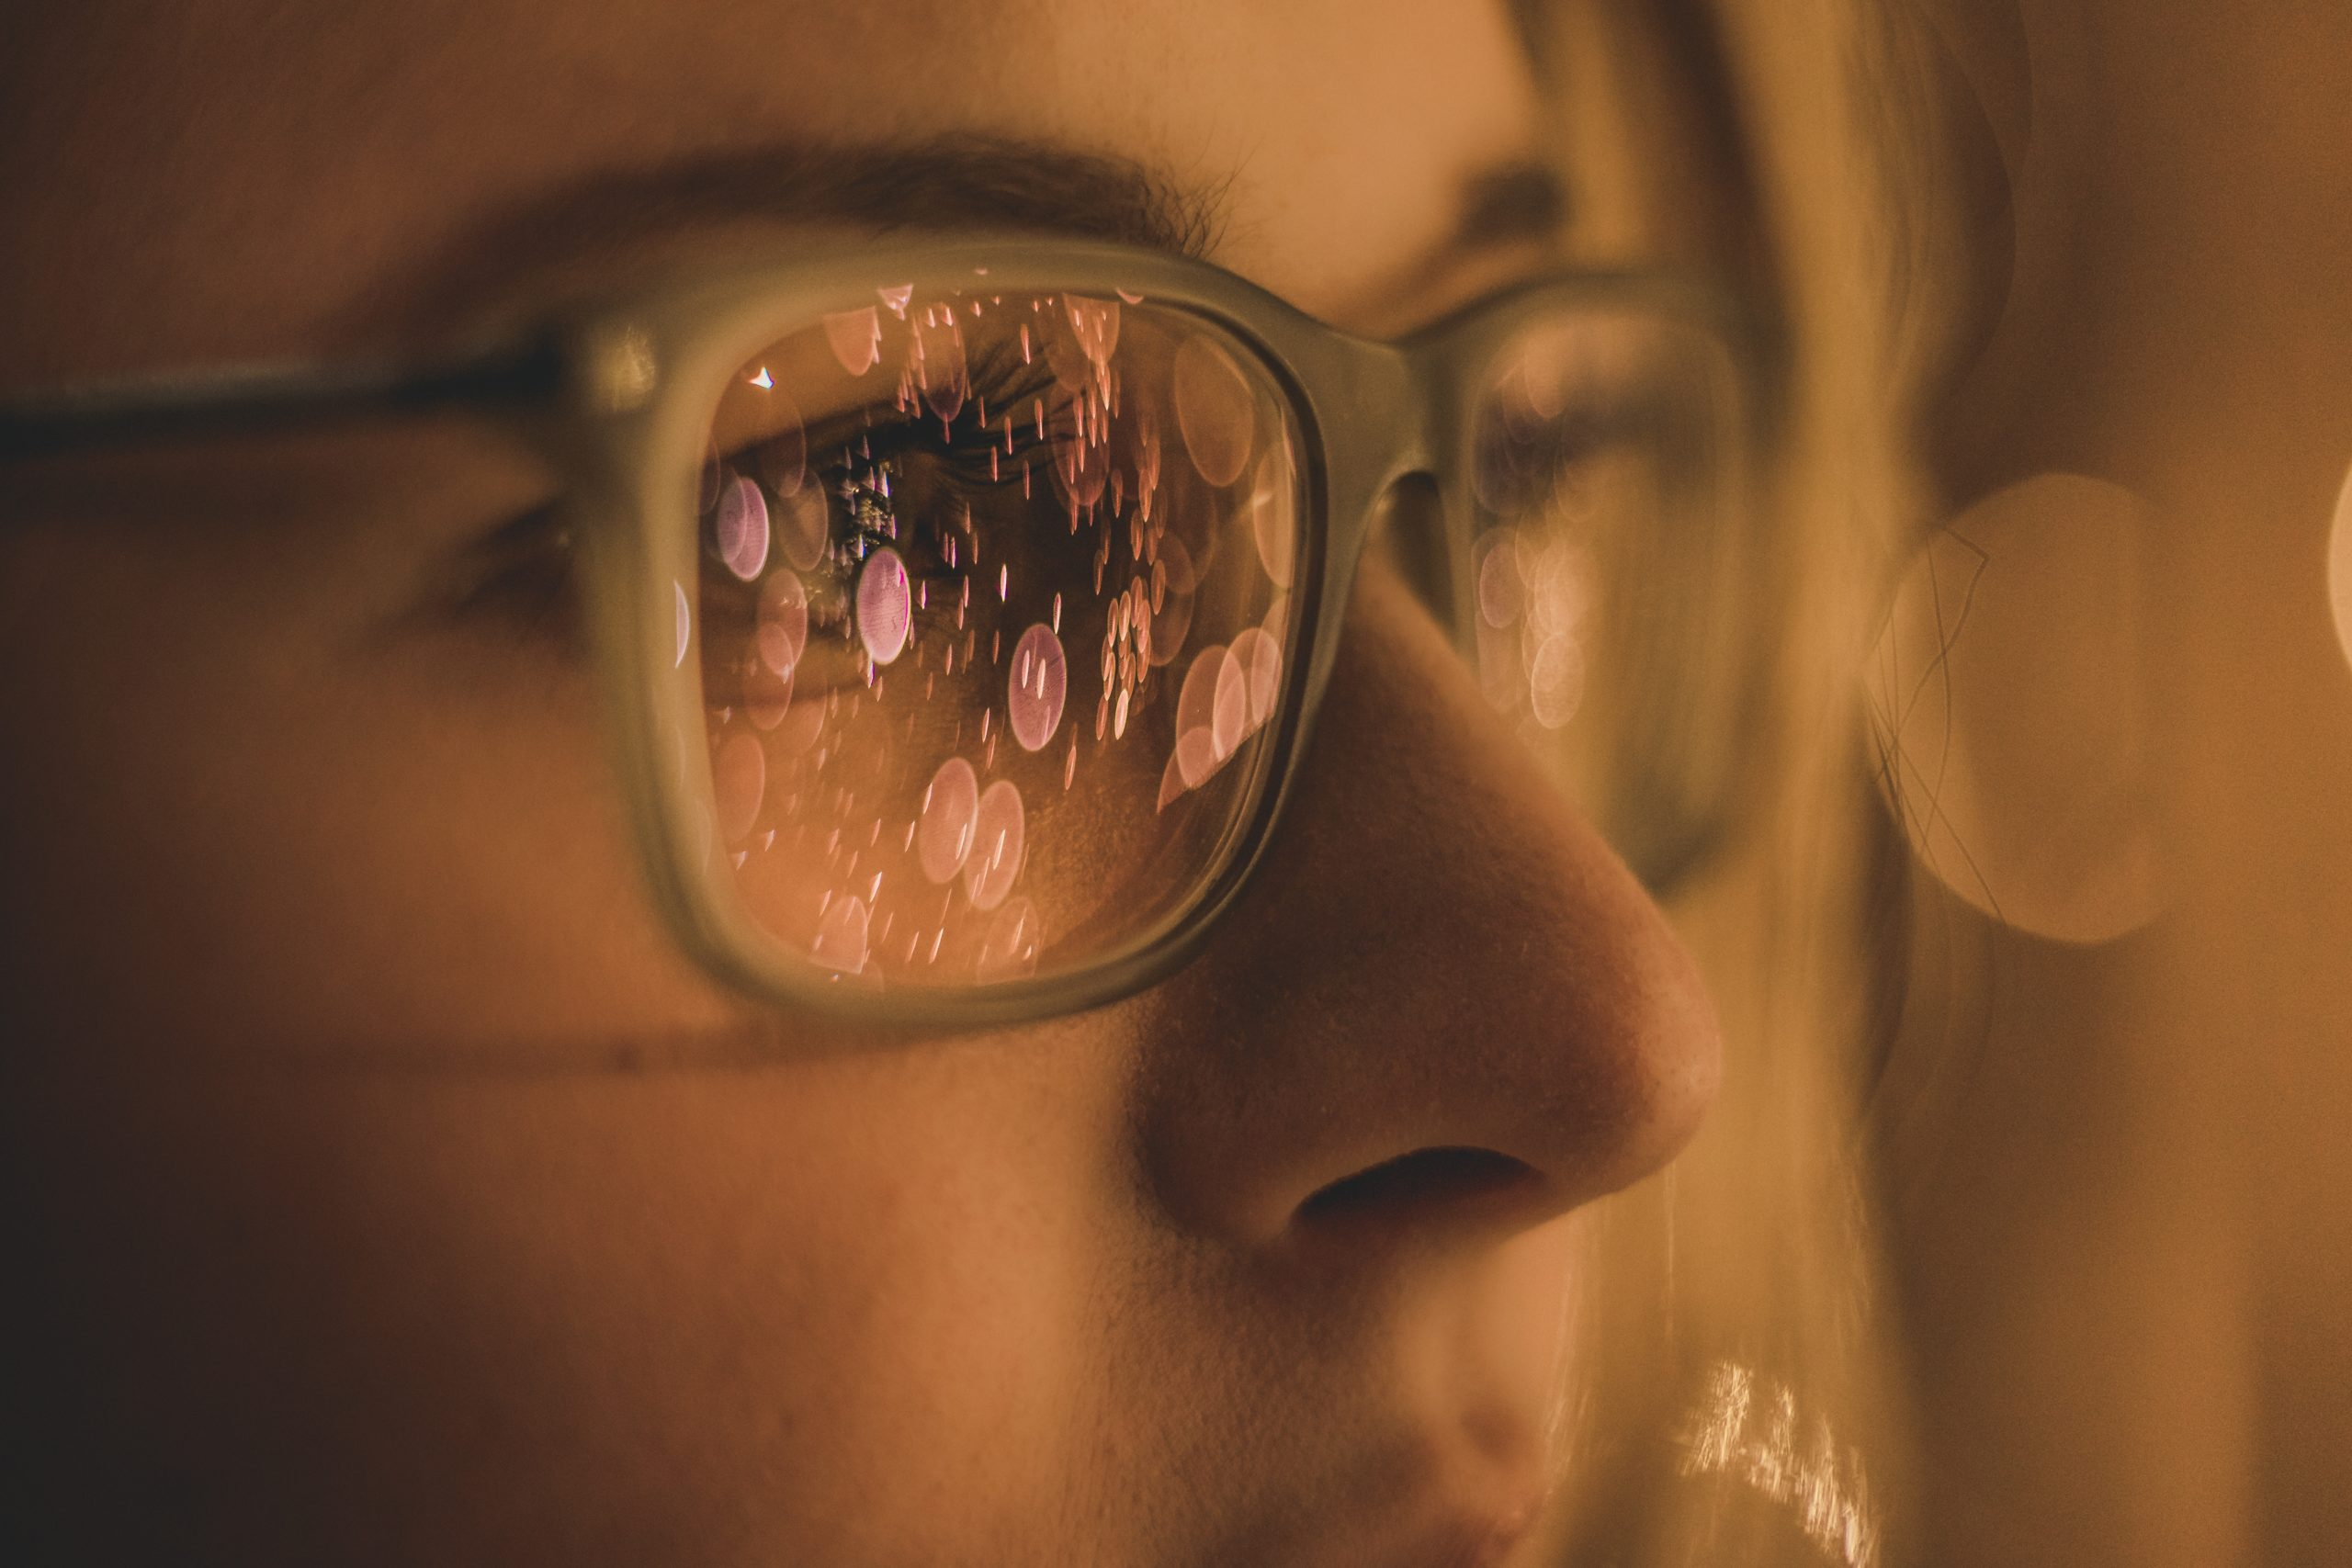 Close up of a blonde woman wearing black and beige plastic rimmed glasses. Many balls of pink light are reflected in the lenses, so her eyes are almost entirely obscured from view.